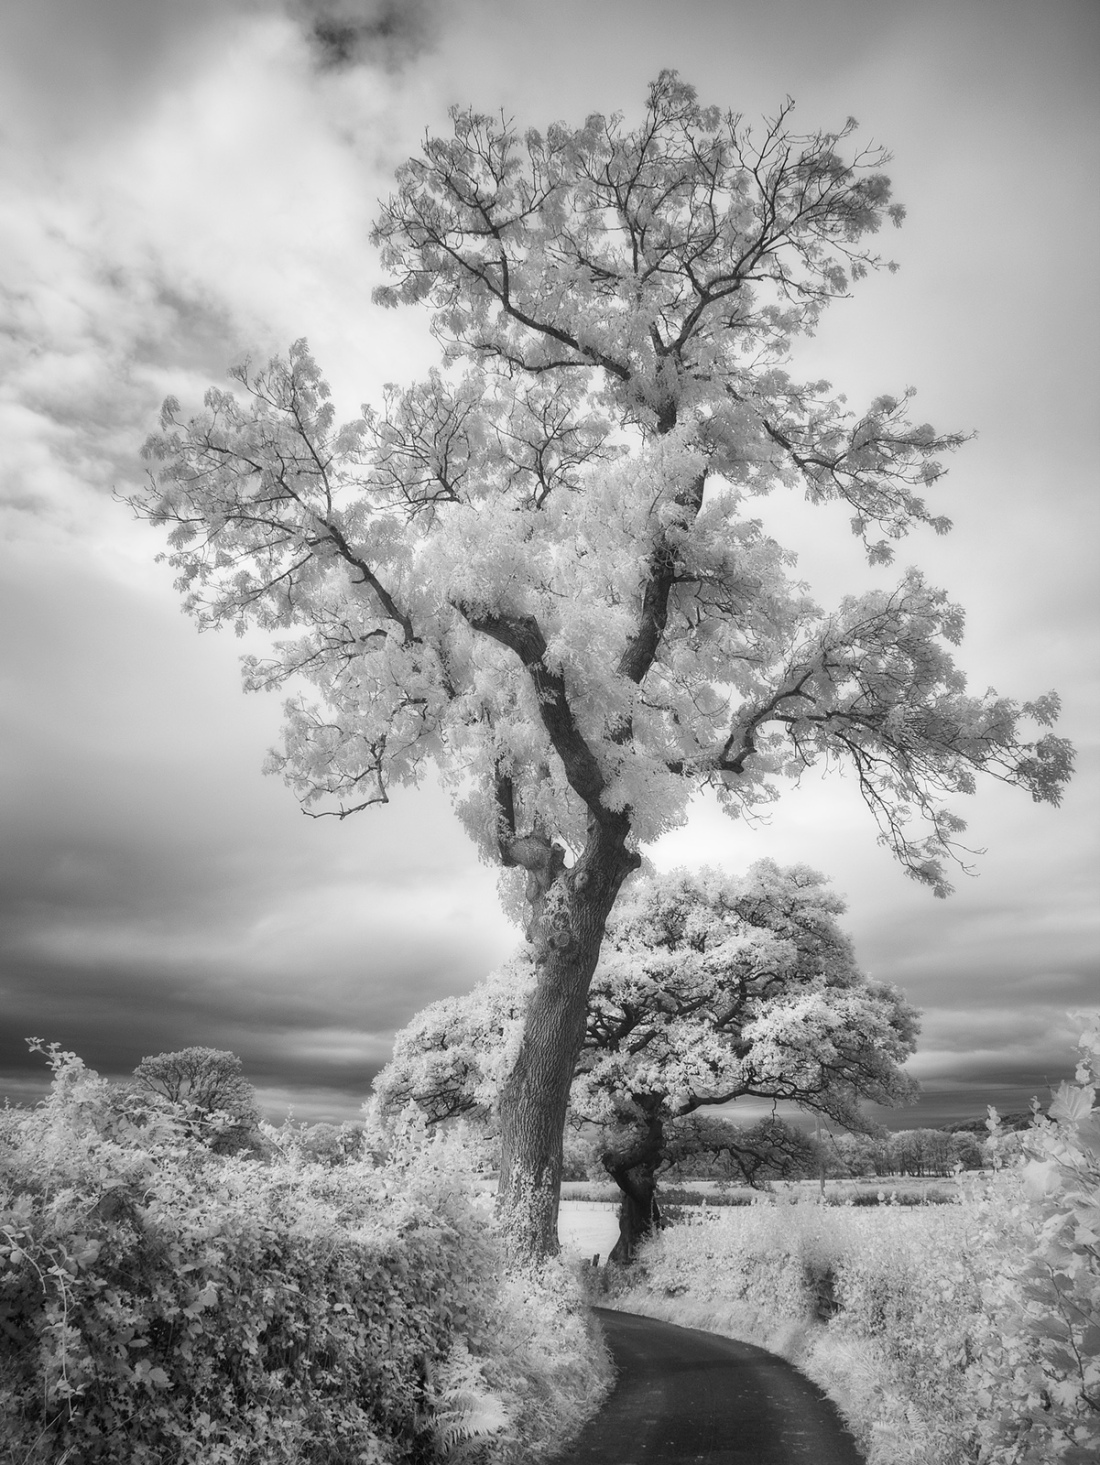 Location unknown. Panasonic GX1 with infrared conversion.